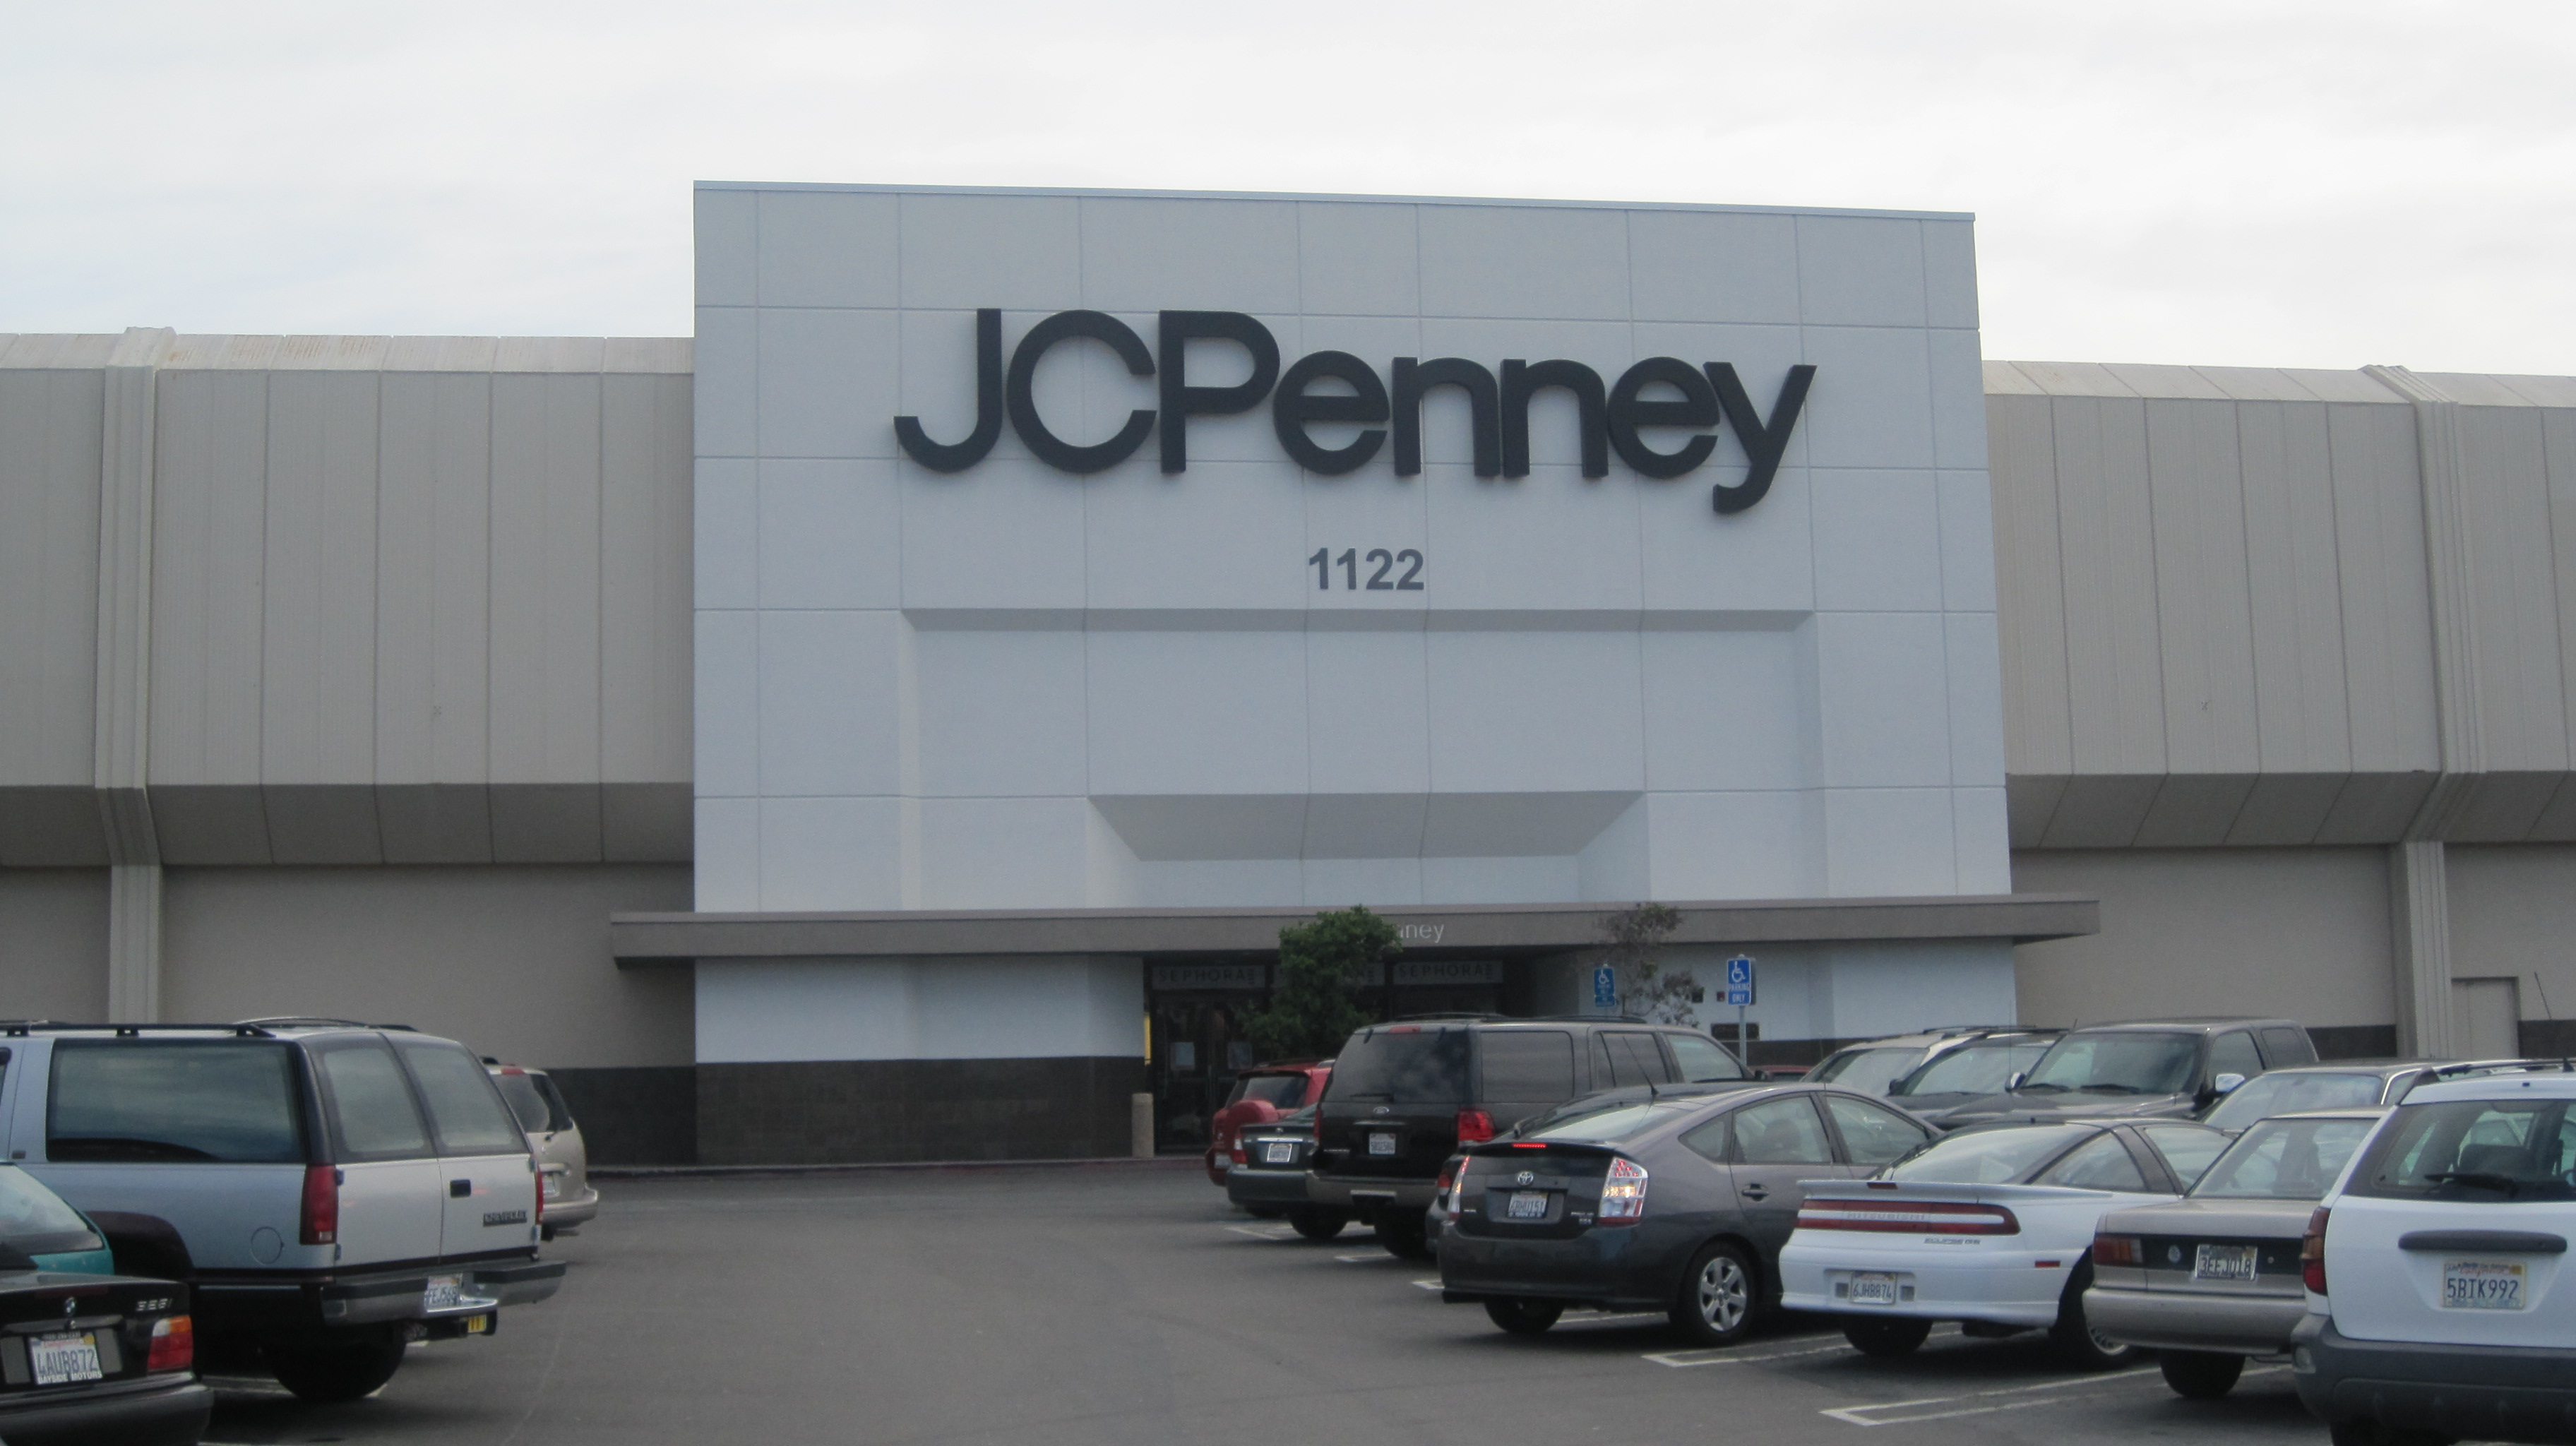 Jcpenney coupons 2019